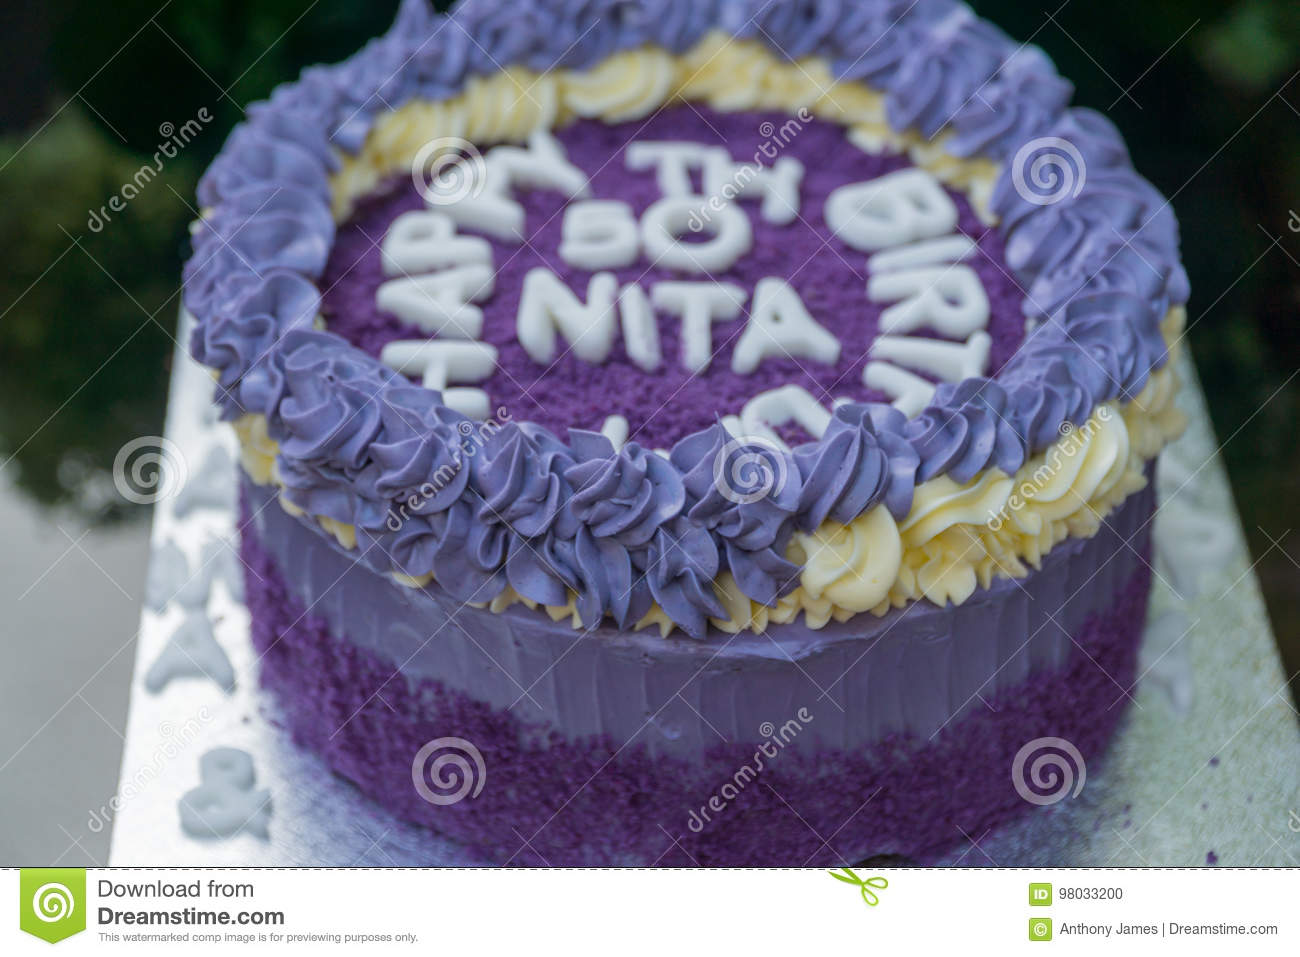 50 Th Birthday Cake Made Out Of Purple Yams Outside On A Table In Garden